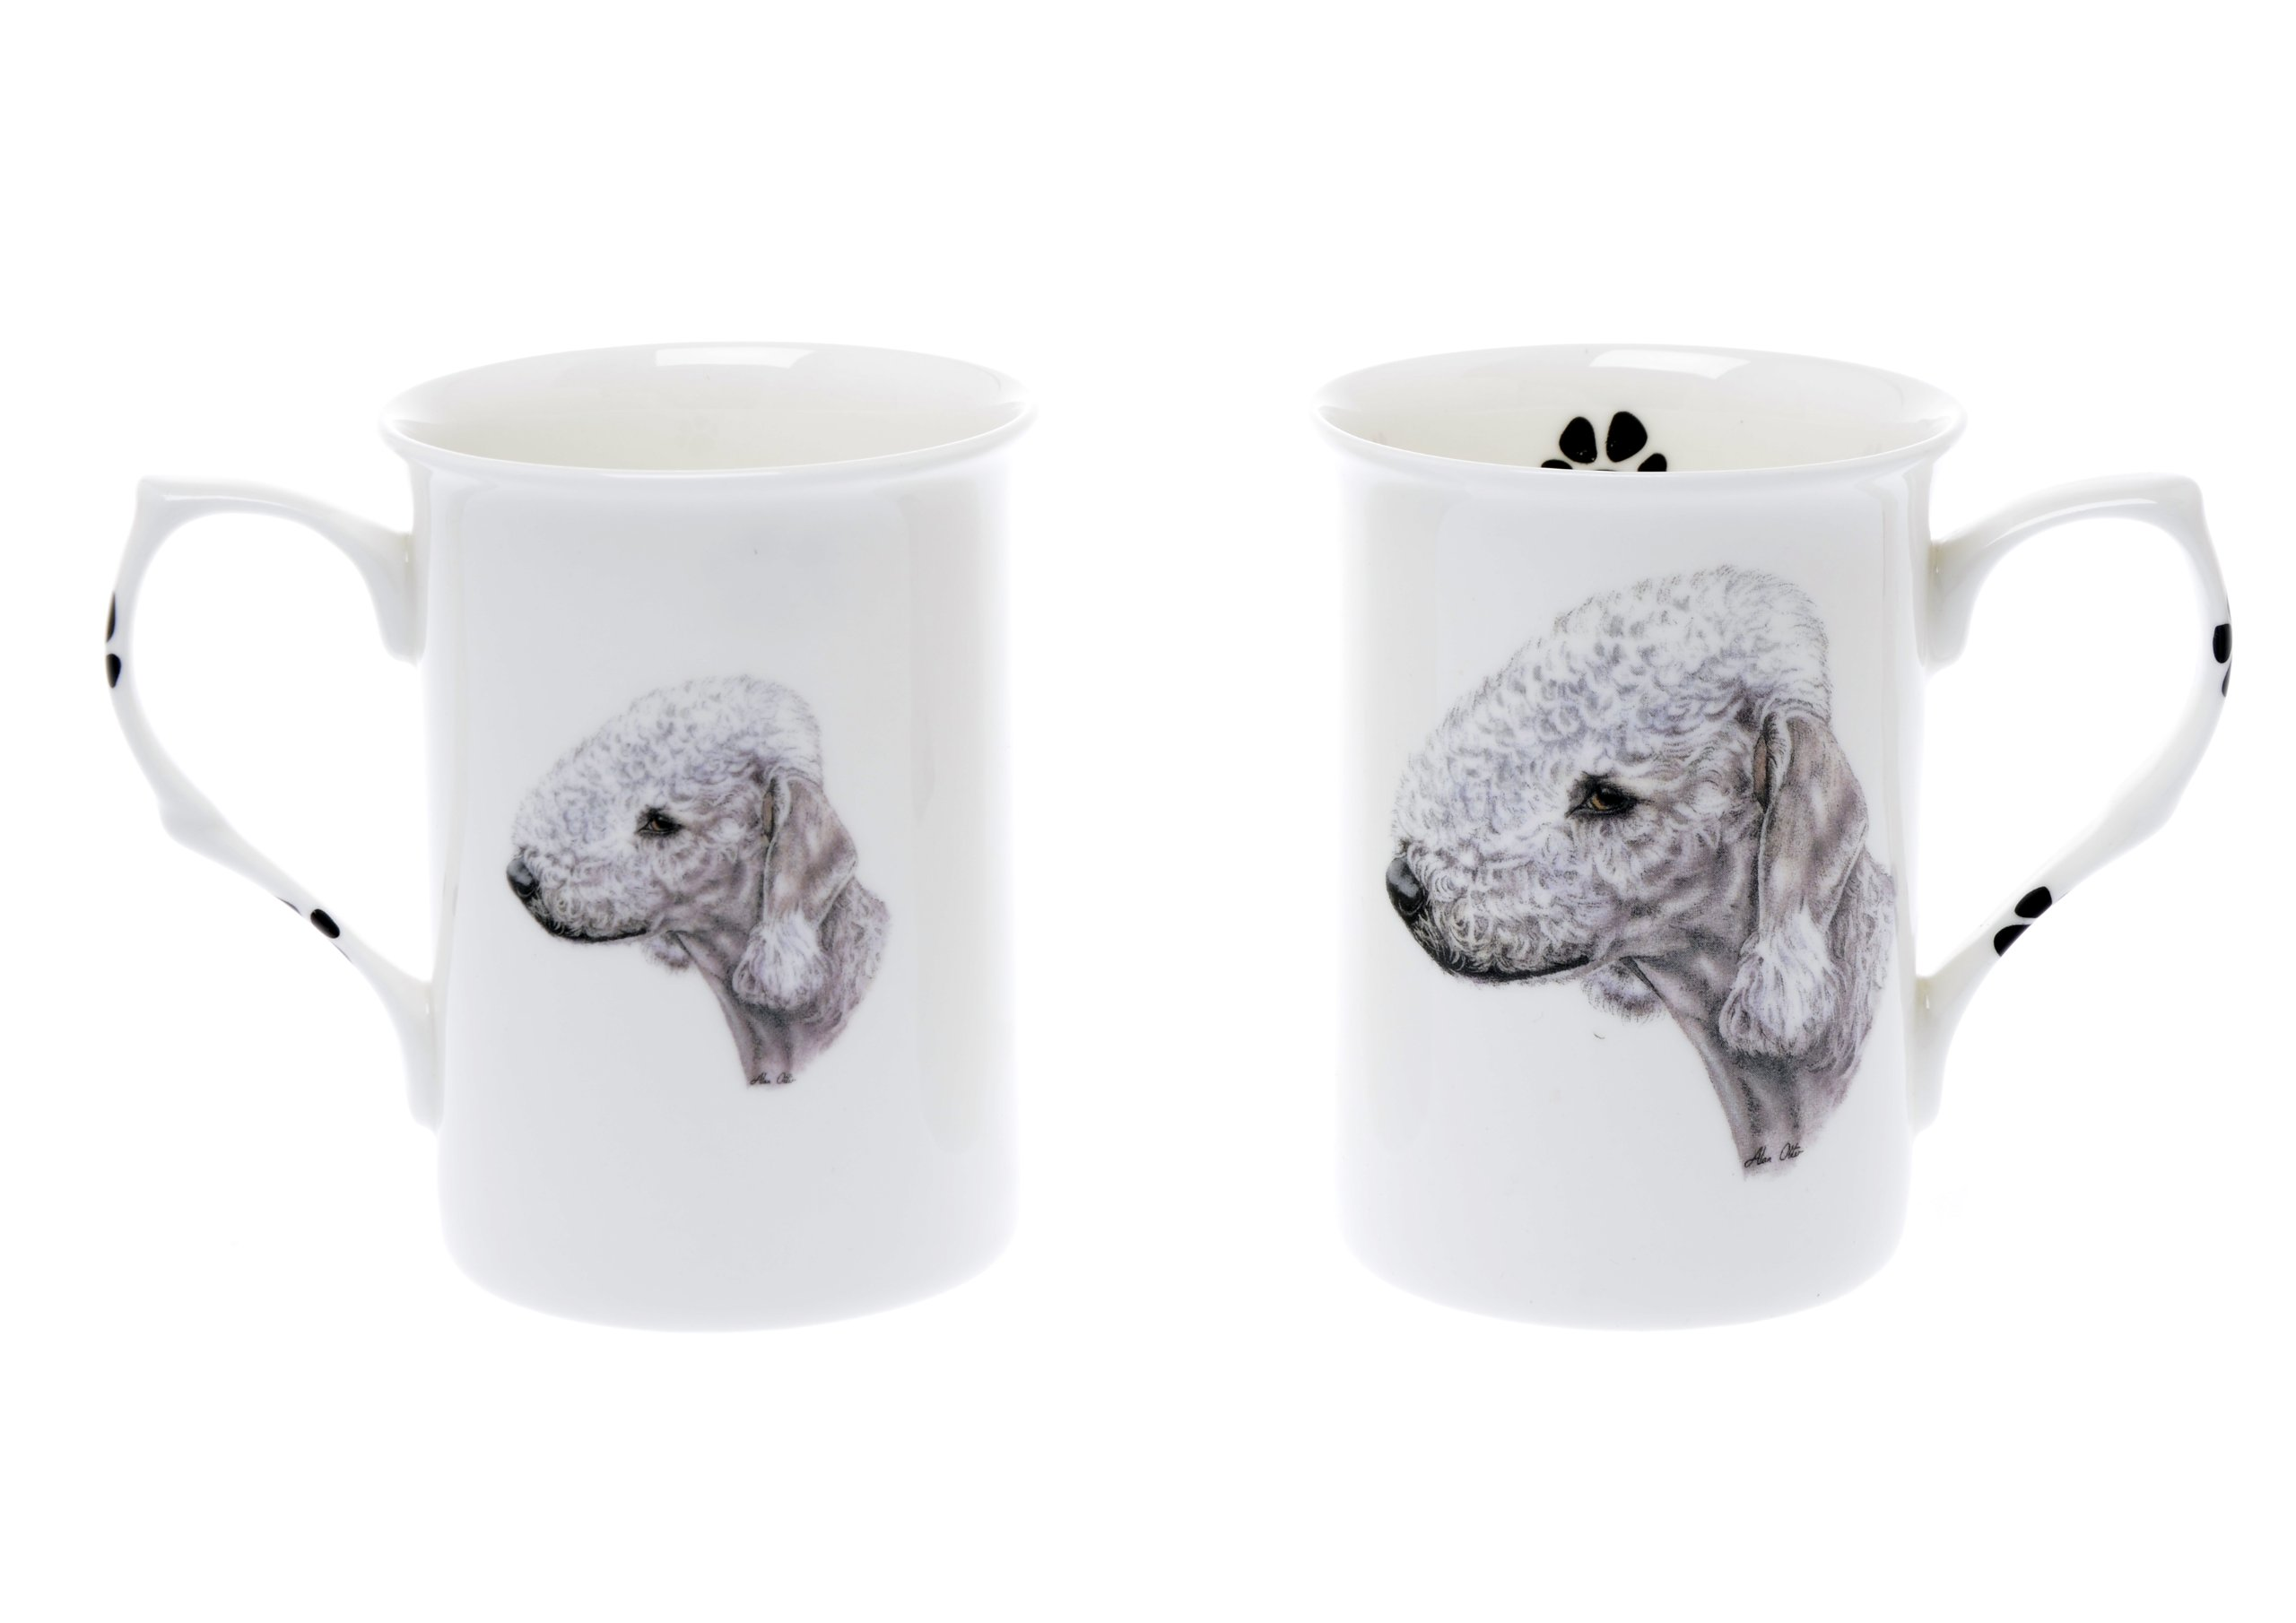 (BB6) SET OF 2 BONE CHINA BEAKERS/ MUGS Bedlington Terrier dog PRESENTATION GIFT BOXED- lovely gift KIRSTY JAYNE CHINA